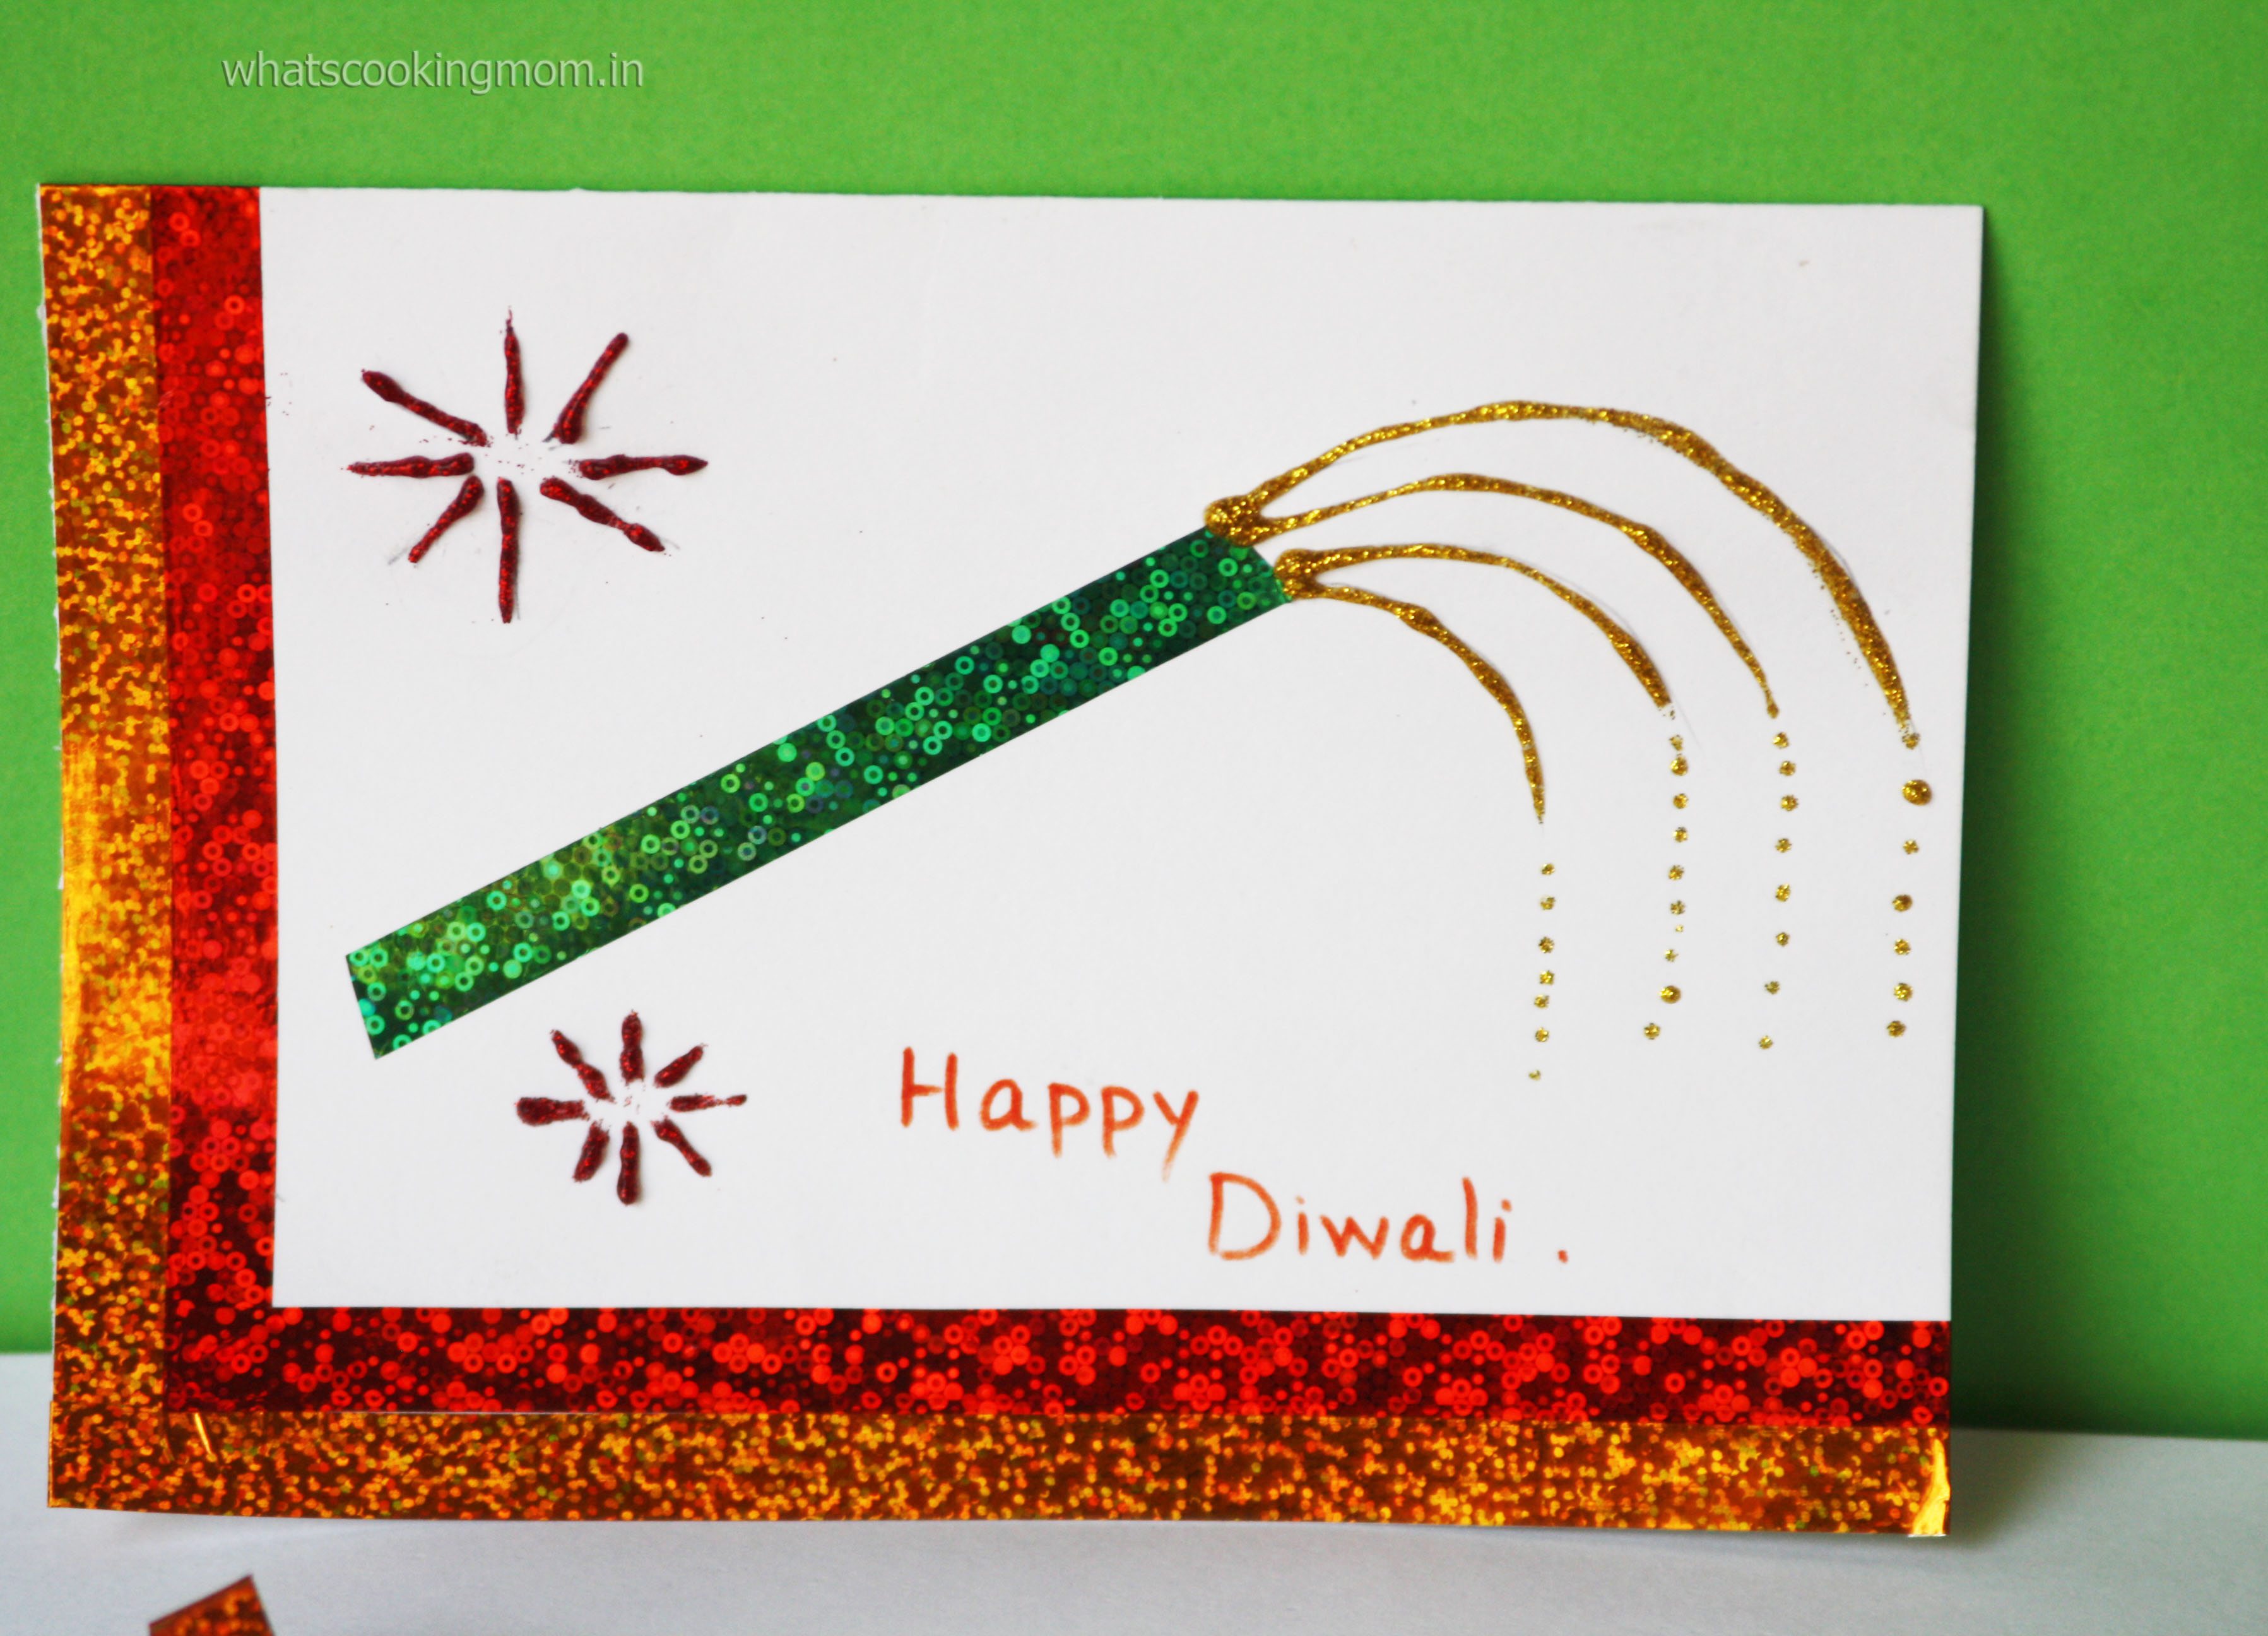 Handmade cards for Diwali - whats cooking mom